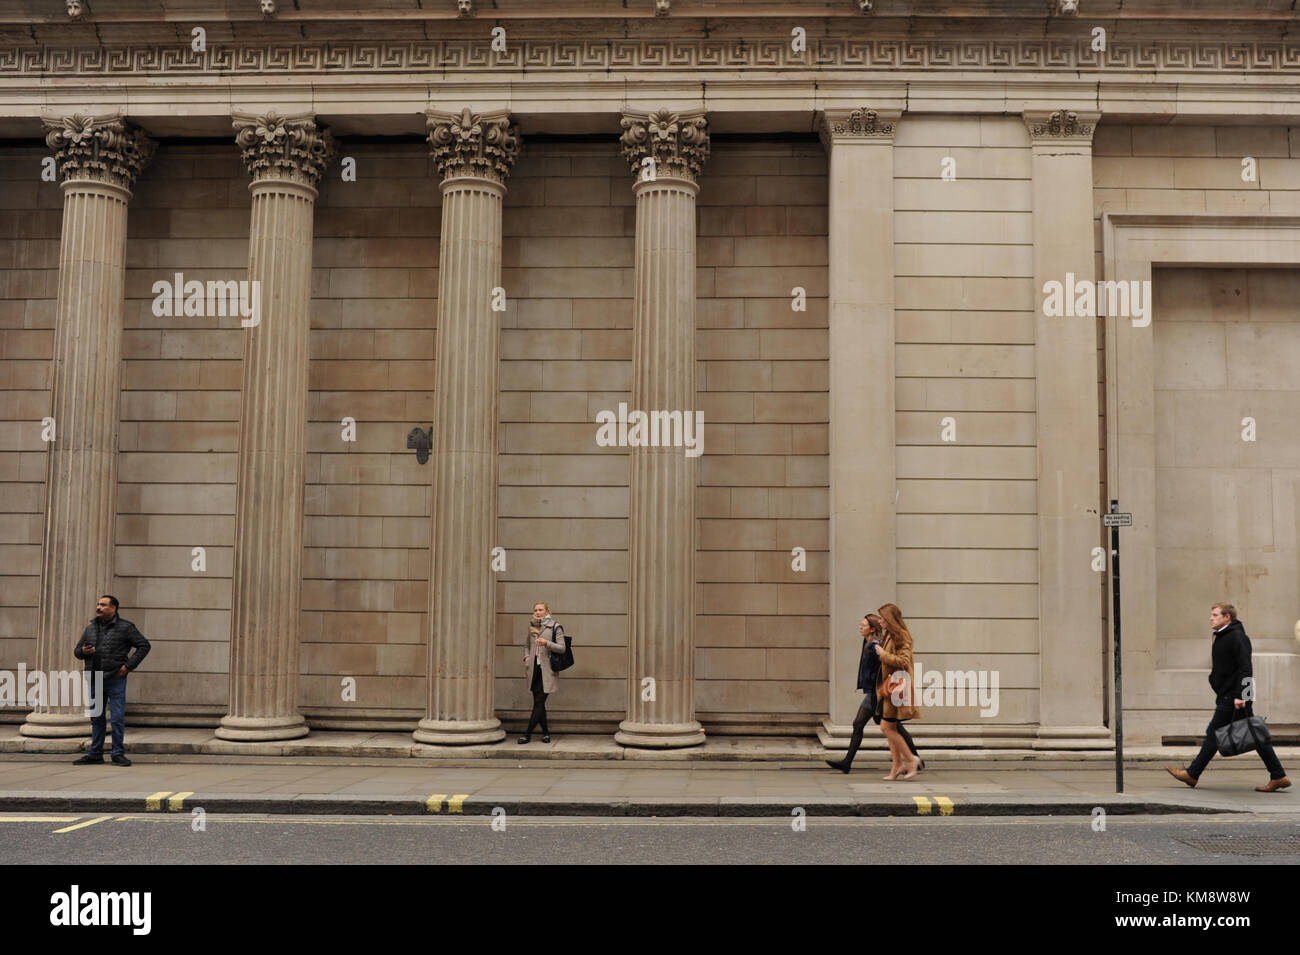 People walk past The Bank of England in London - Stock Image